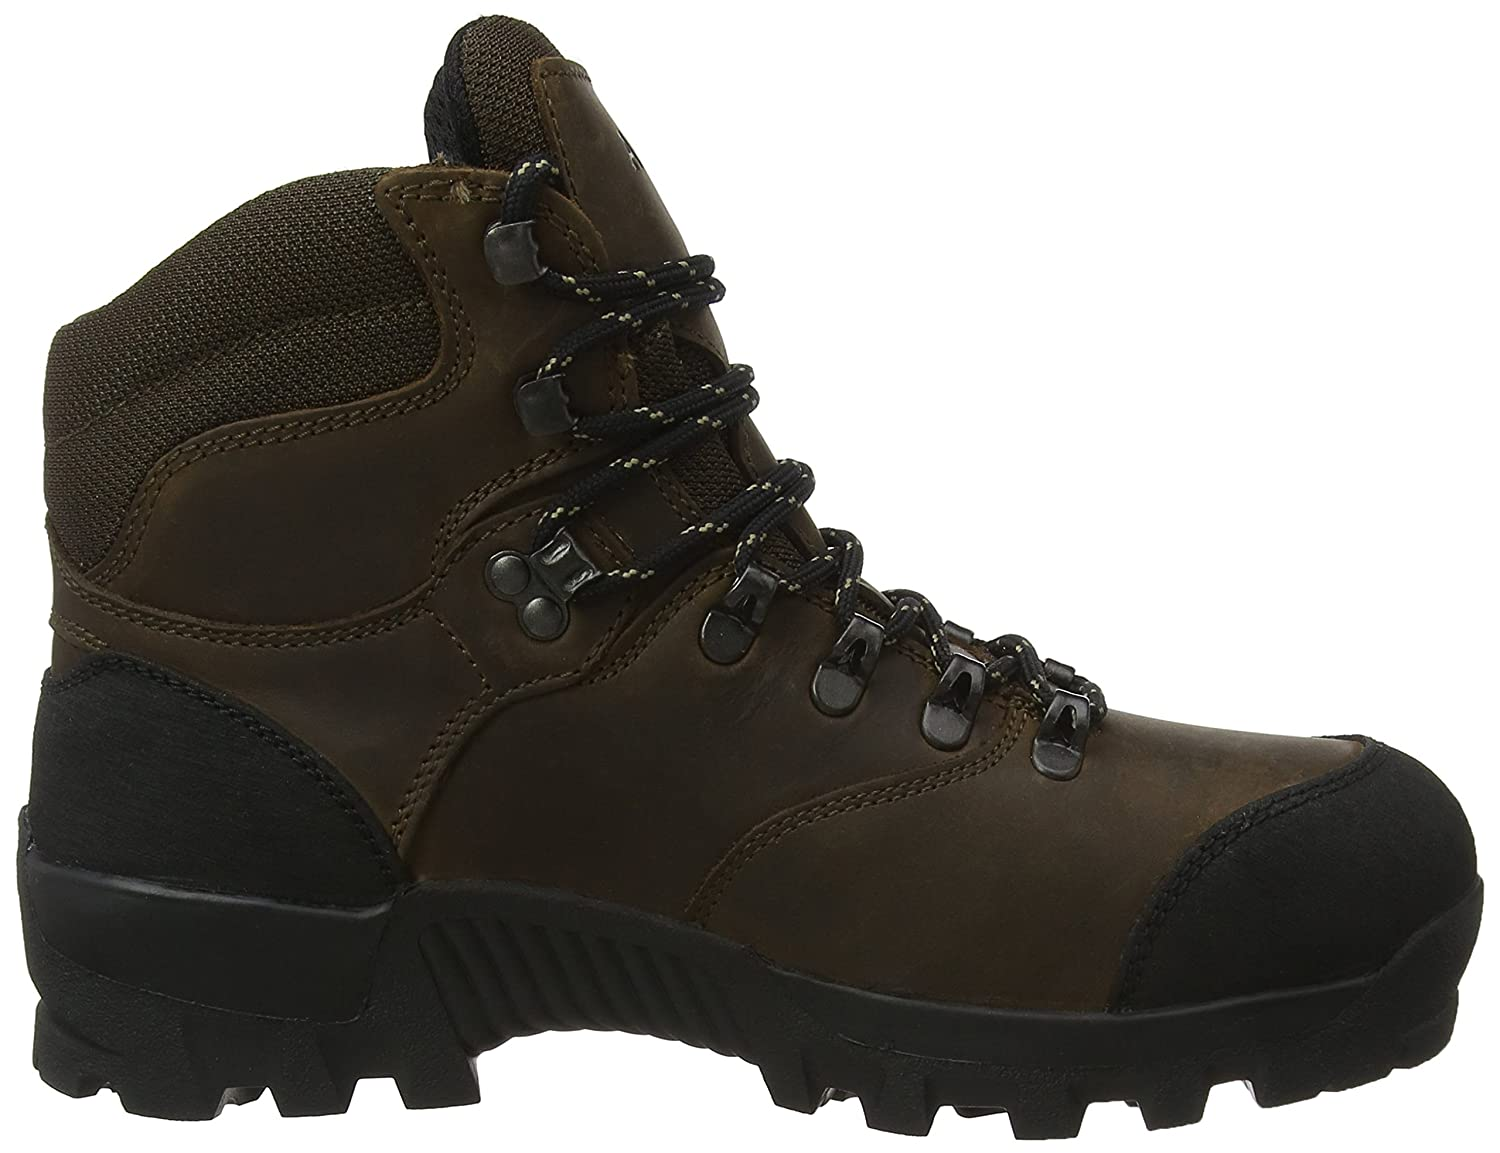 edba3c206d3 Aigle Men s Altavio Gore-tex Leather Hunting Shoes  Amazon.co.uk  Shoes    Bags